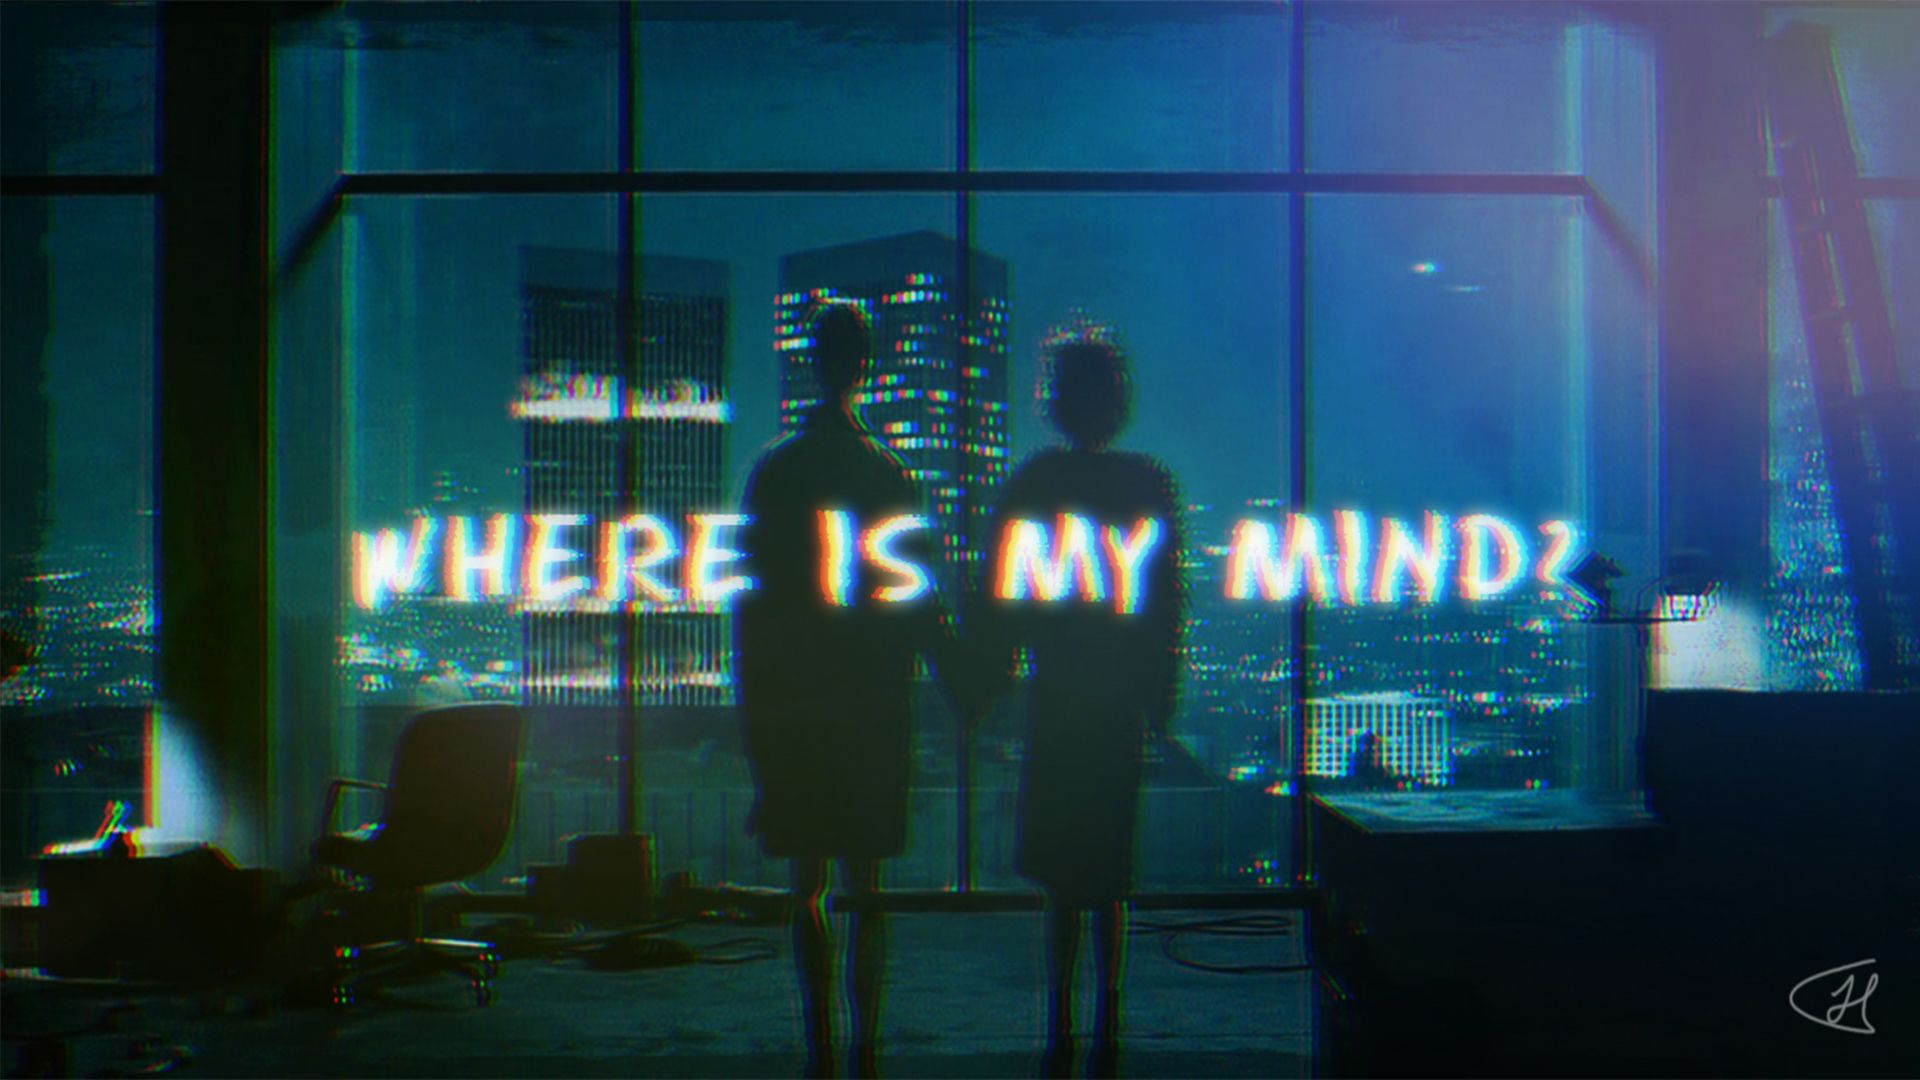 Fight Club Where Is My Mind Song Scene Desktop Wallpaper 1920x1080 Desktop Wallpaper 1920x1080 Where Is My Mind Neon Signs Fight club desktop wallpaper hd